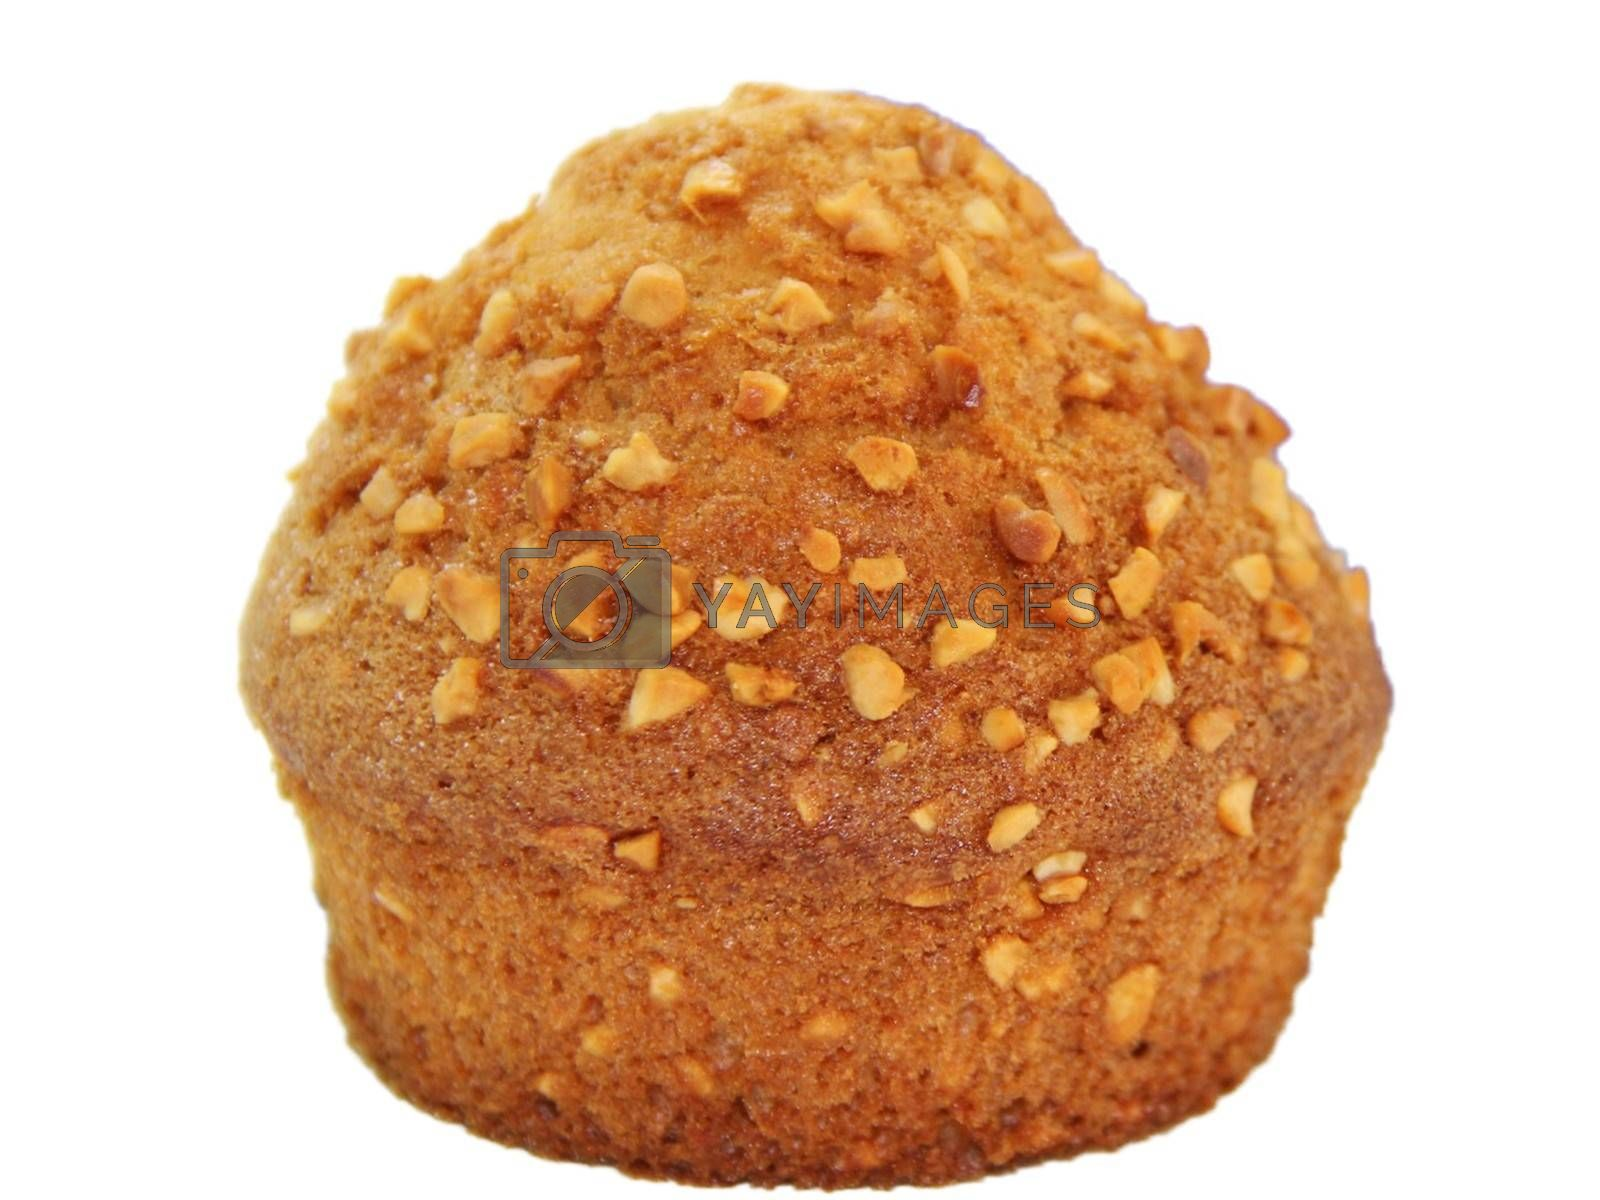 Royalty free image of Closeup of a muffin with nuts isolated on white background by balage941